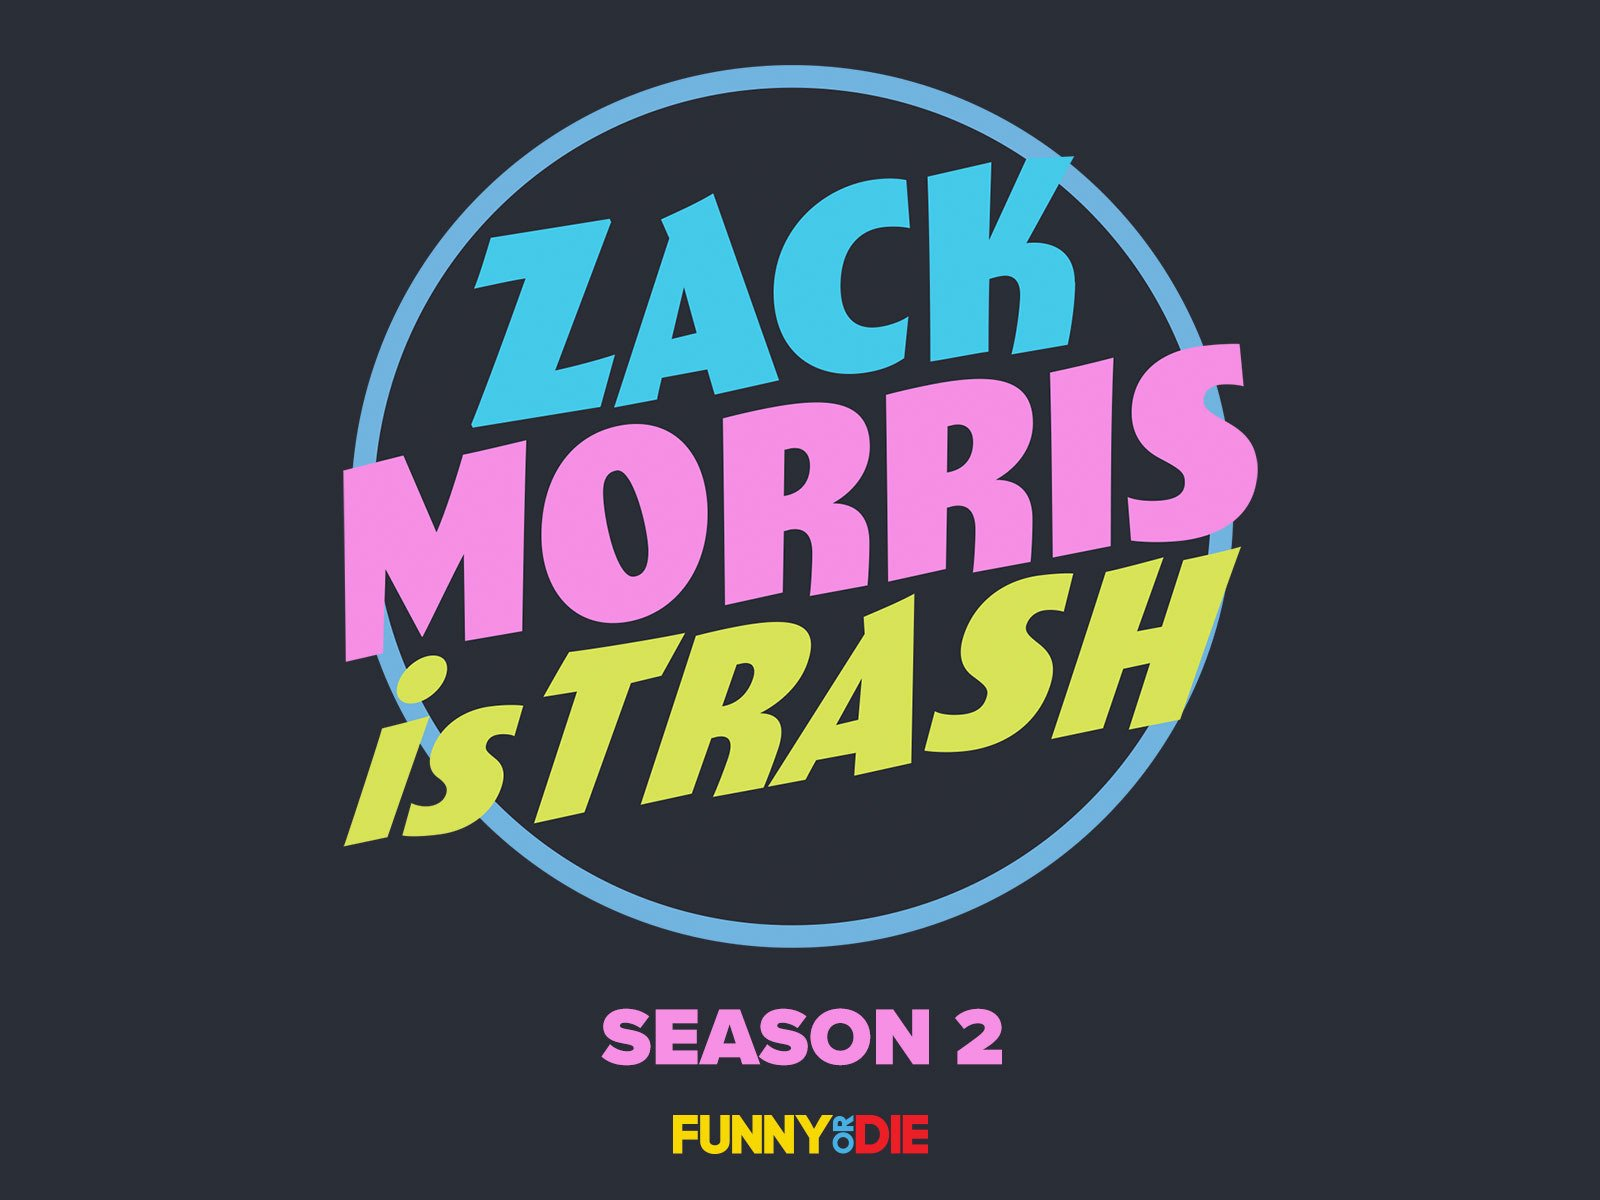 Zack Morris Is Trash - Season 2